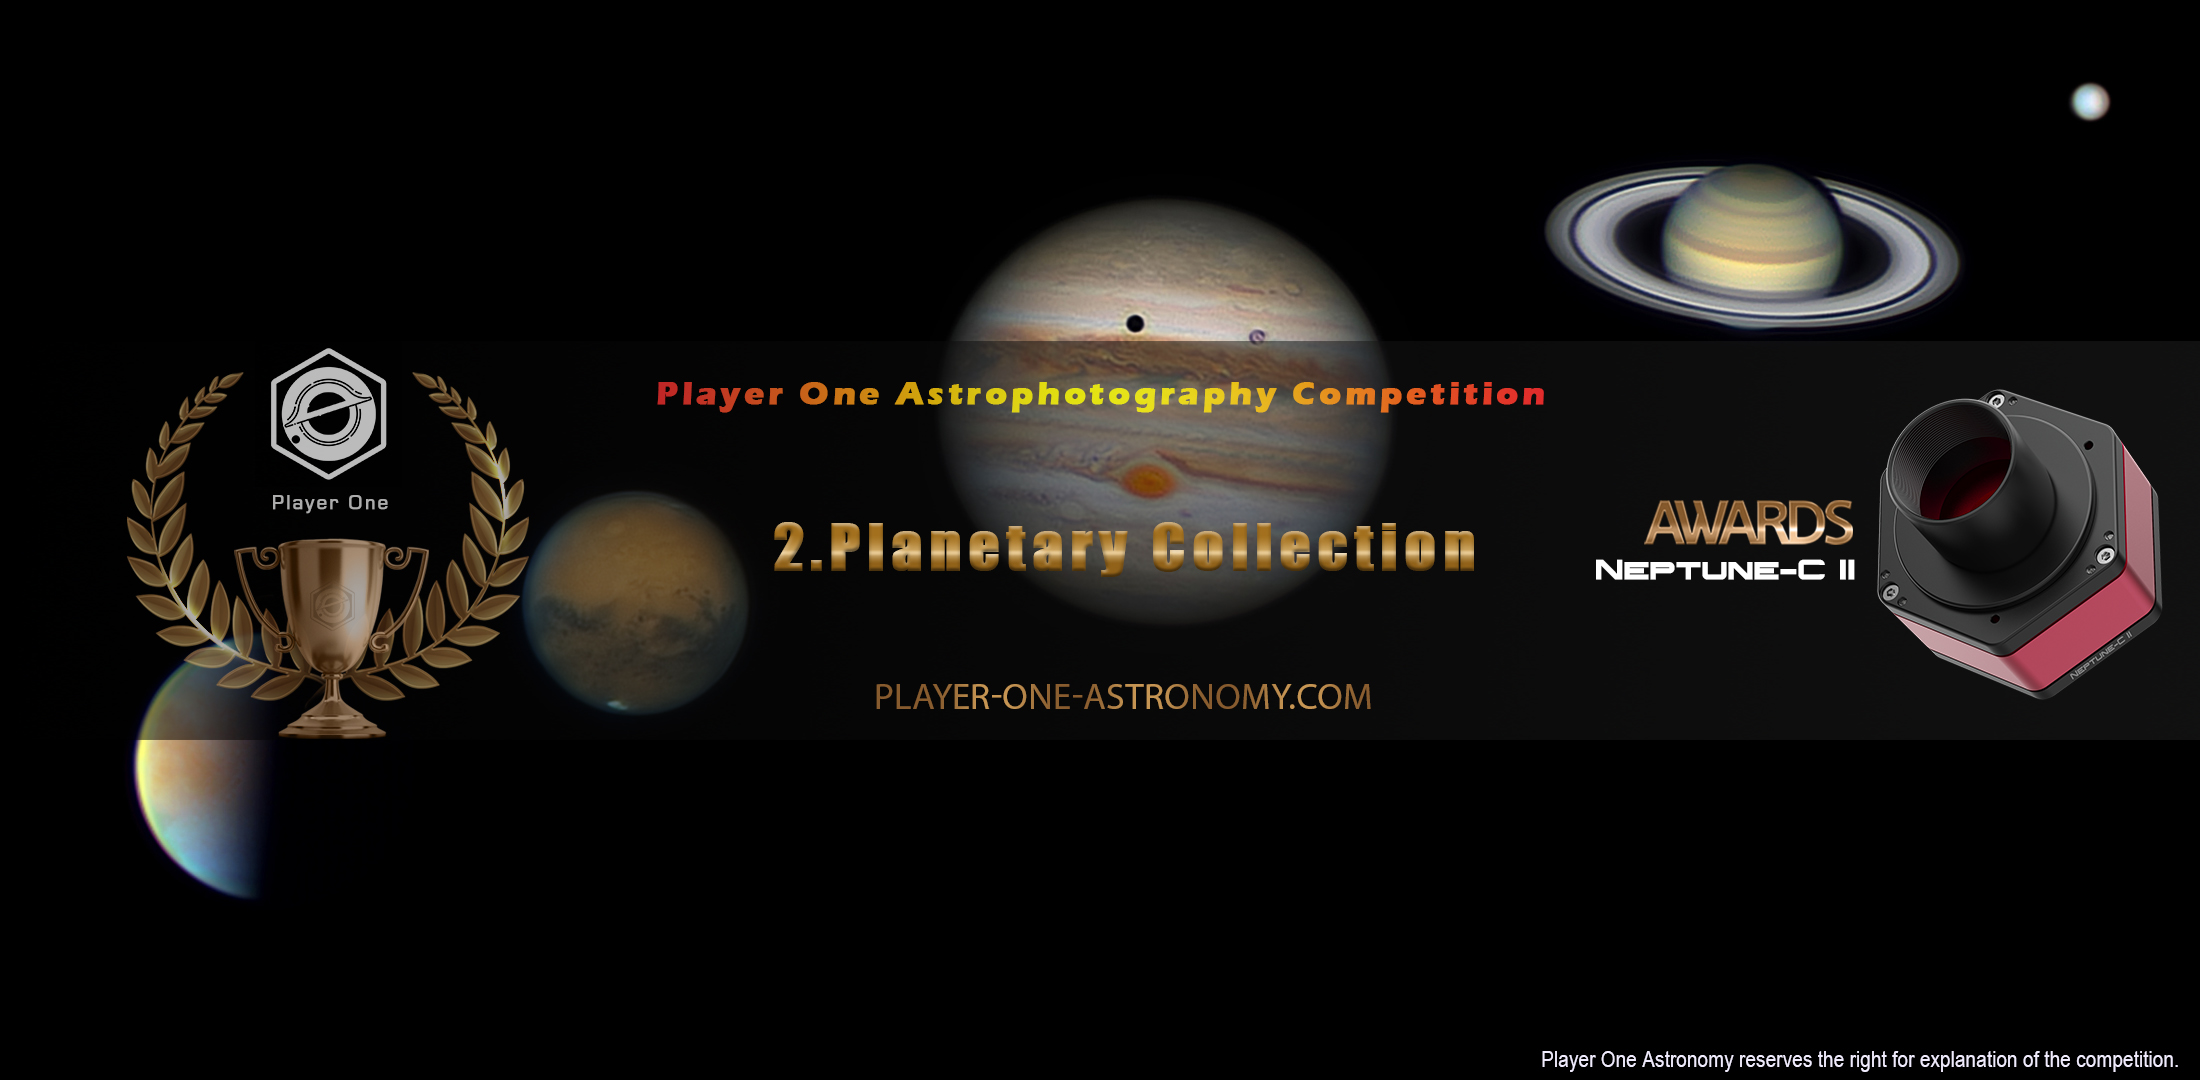 Player One Astrophotography Competition Round 2 : Planetary Collection